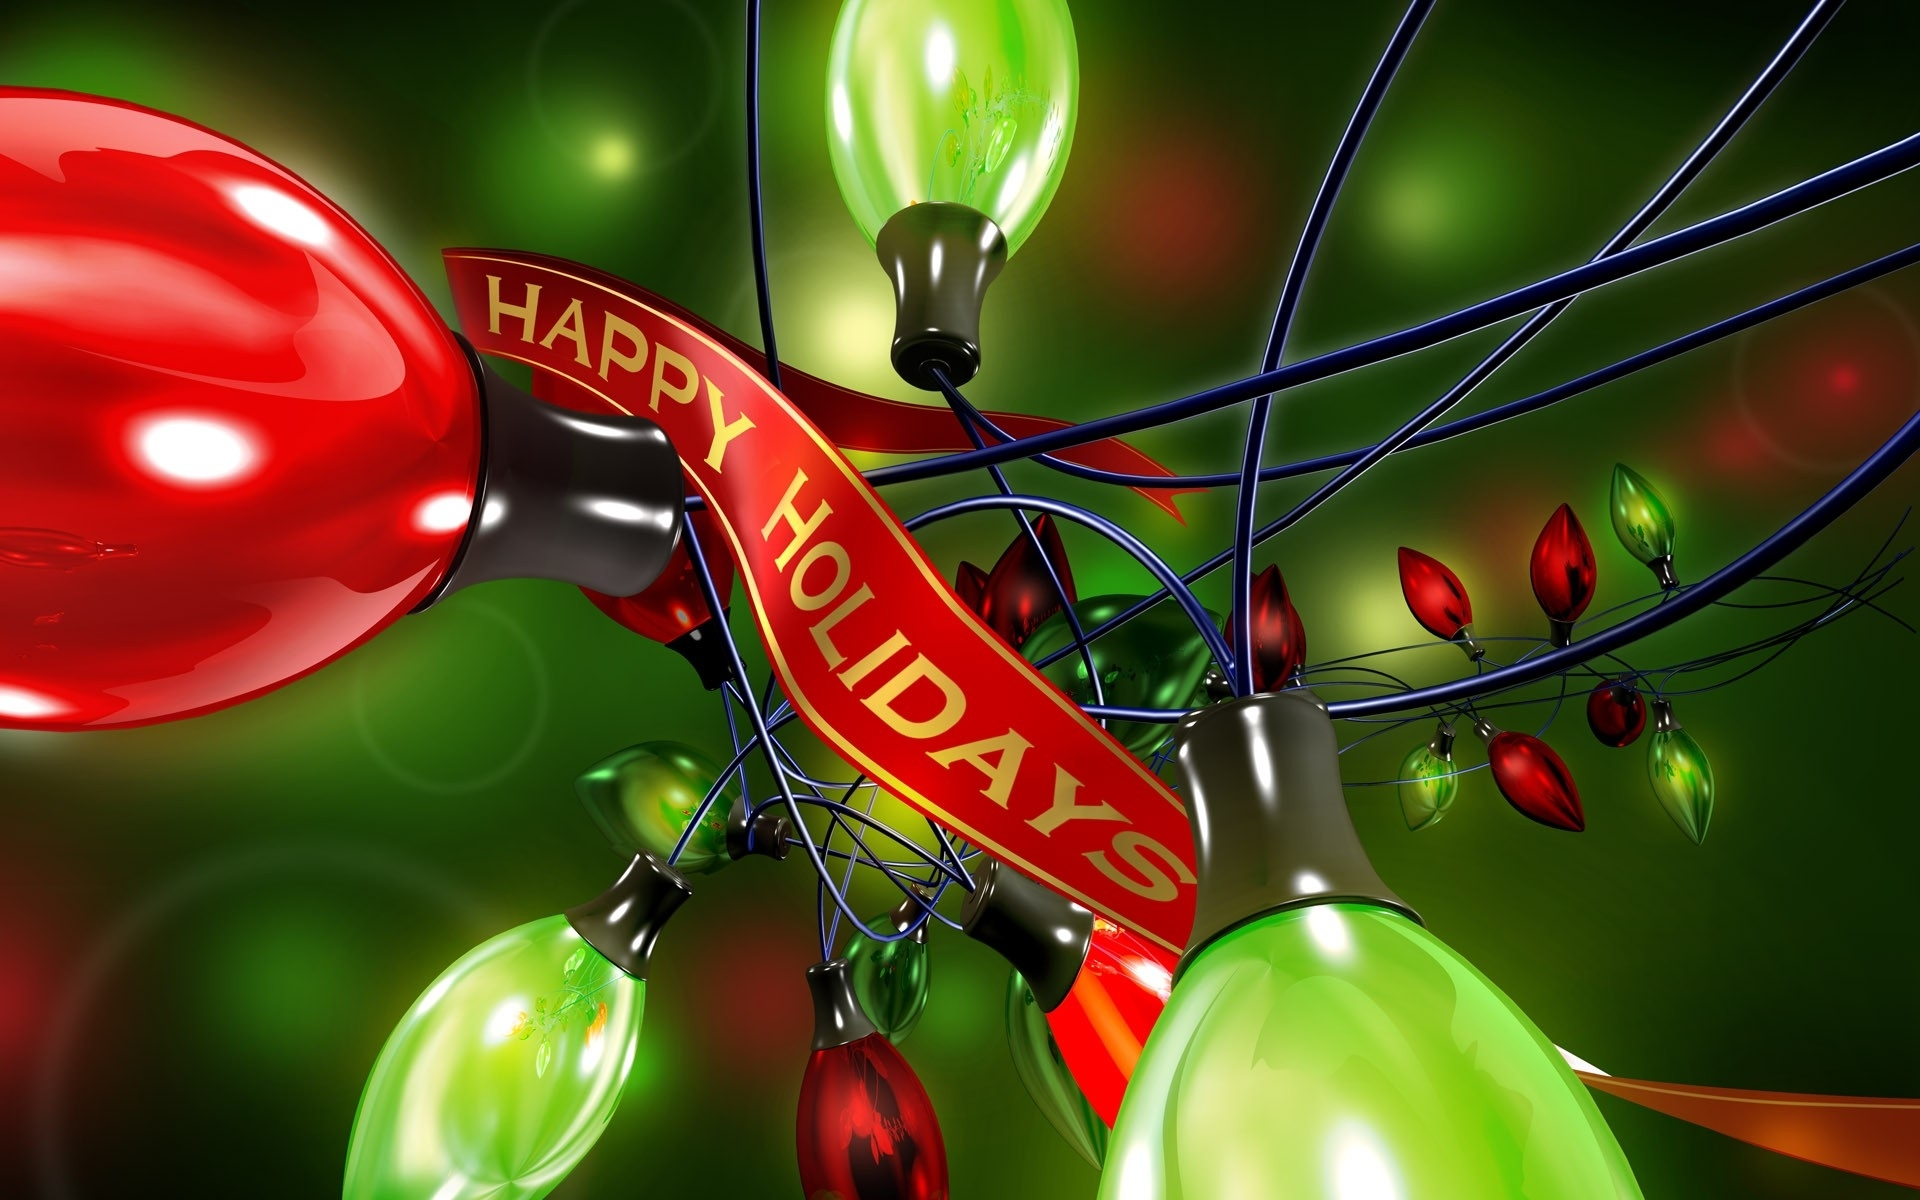 happy holidays wallpapers | hd wallpapers | id #4744